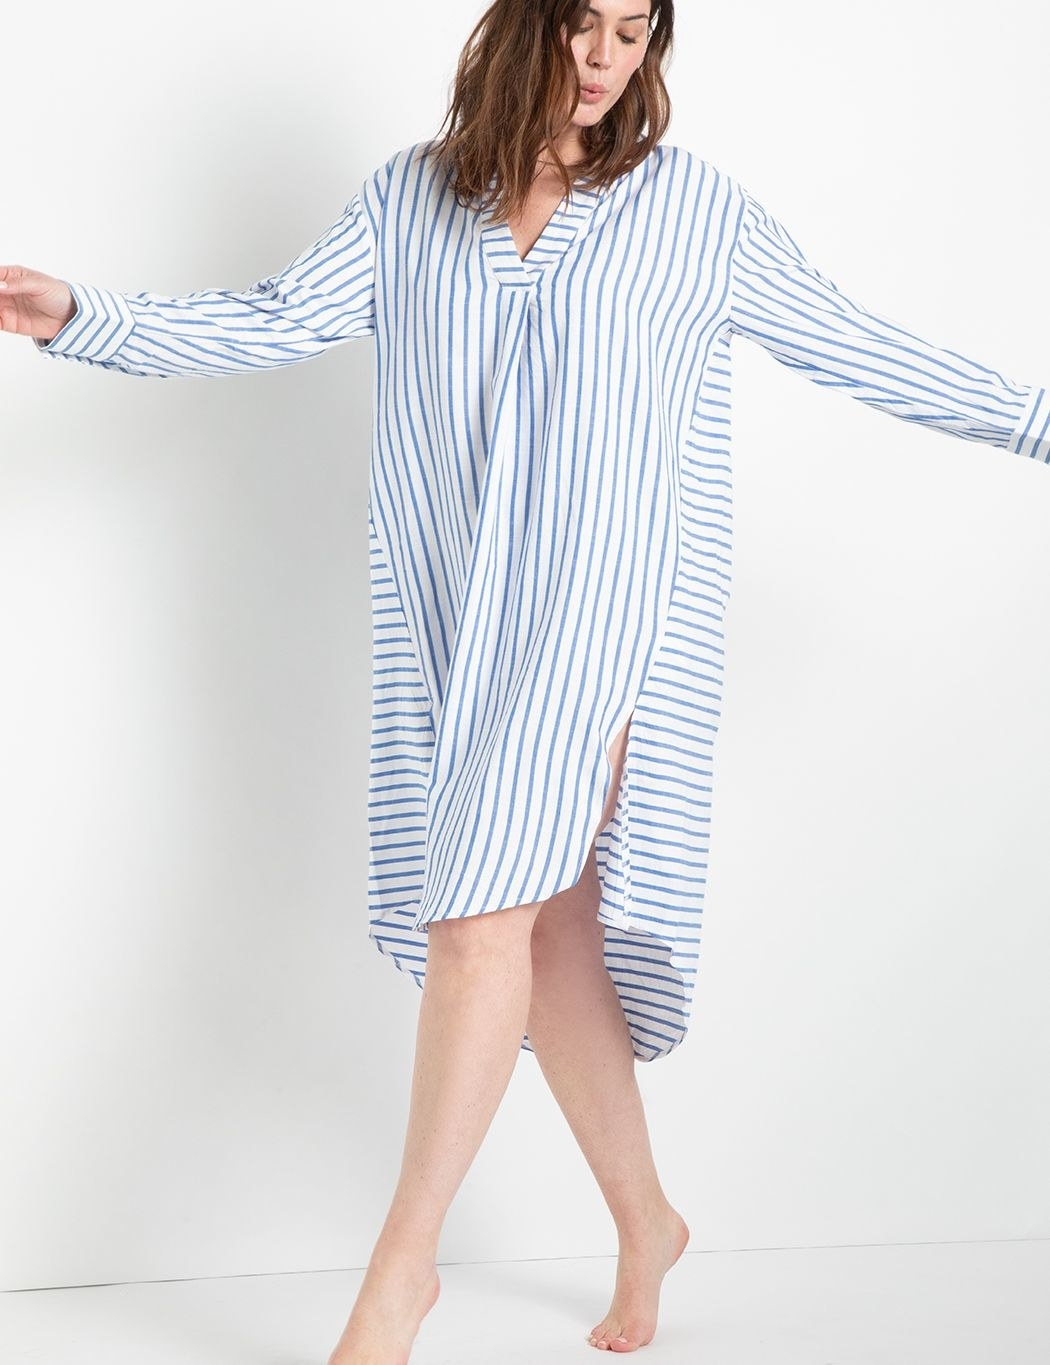 model in knee-length blue and white striped long-sleeve dress